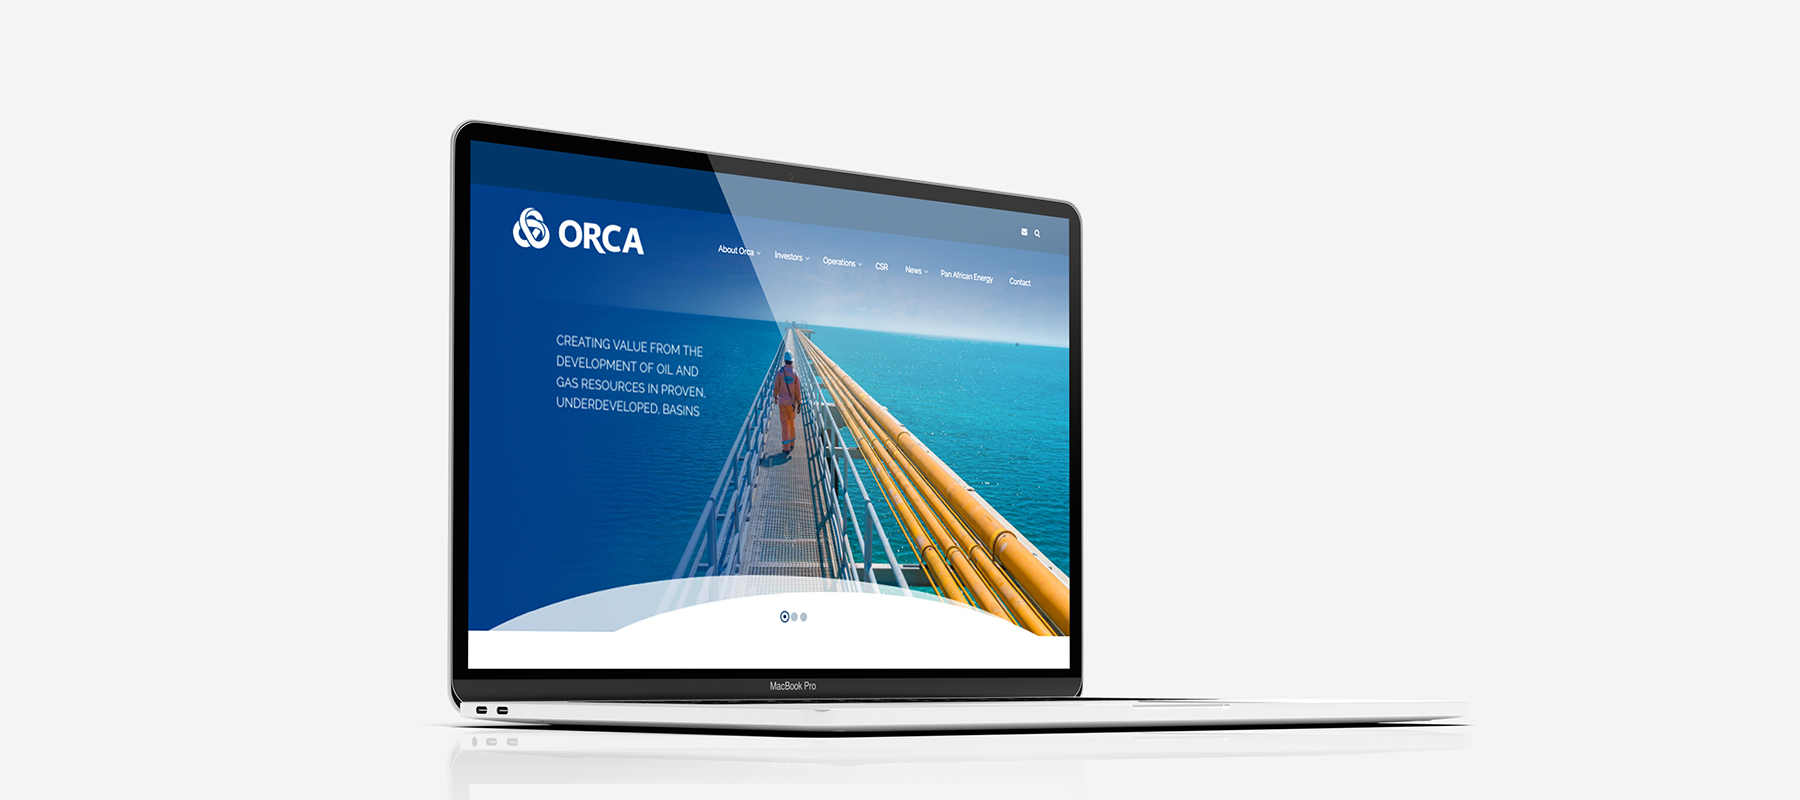 A macbook showing the home page of Orca Exploration